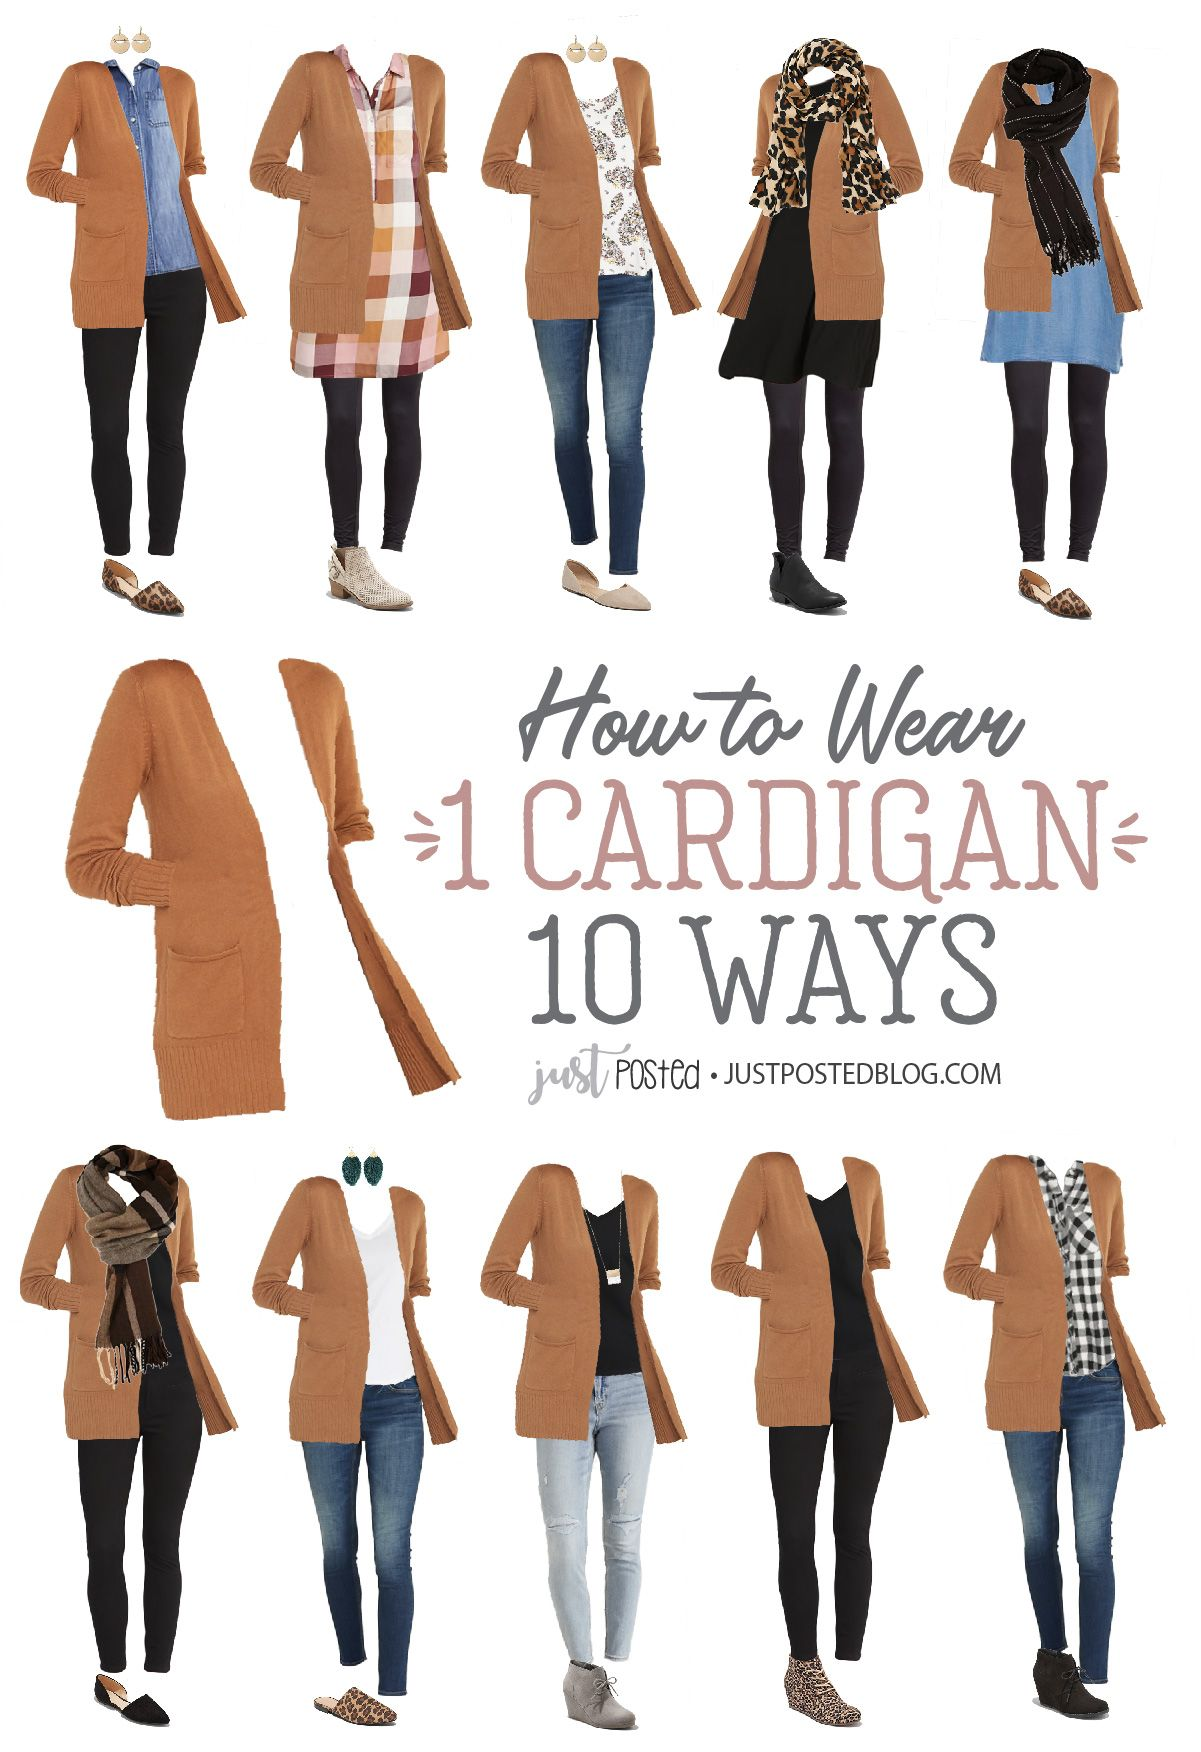 How to Wear and Style 1 Cardigan 10 Different Ways: Each Look Under $100